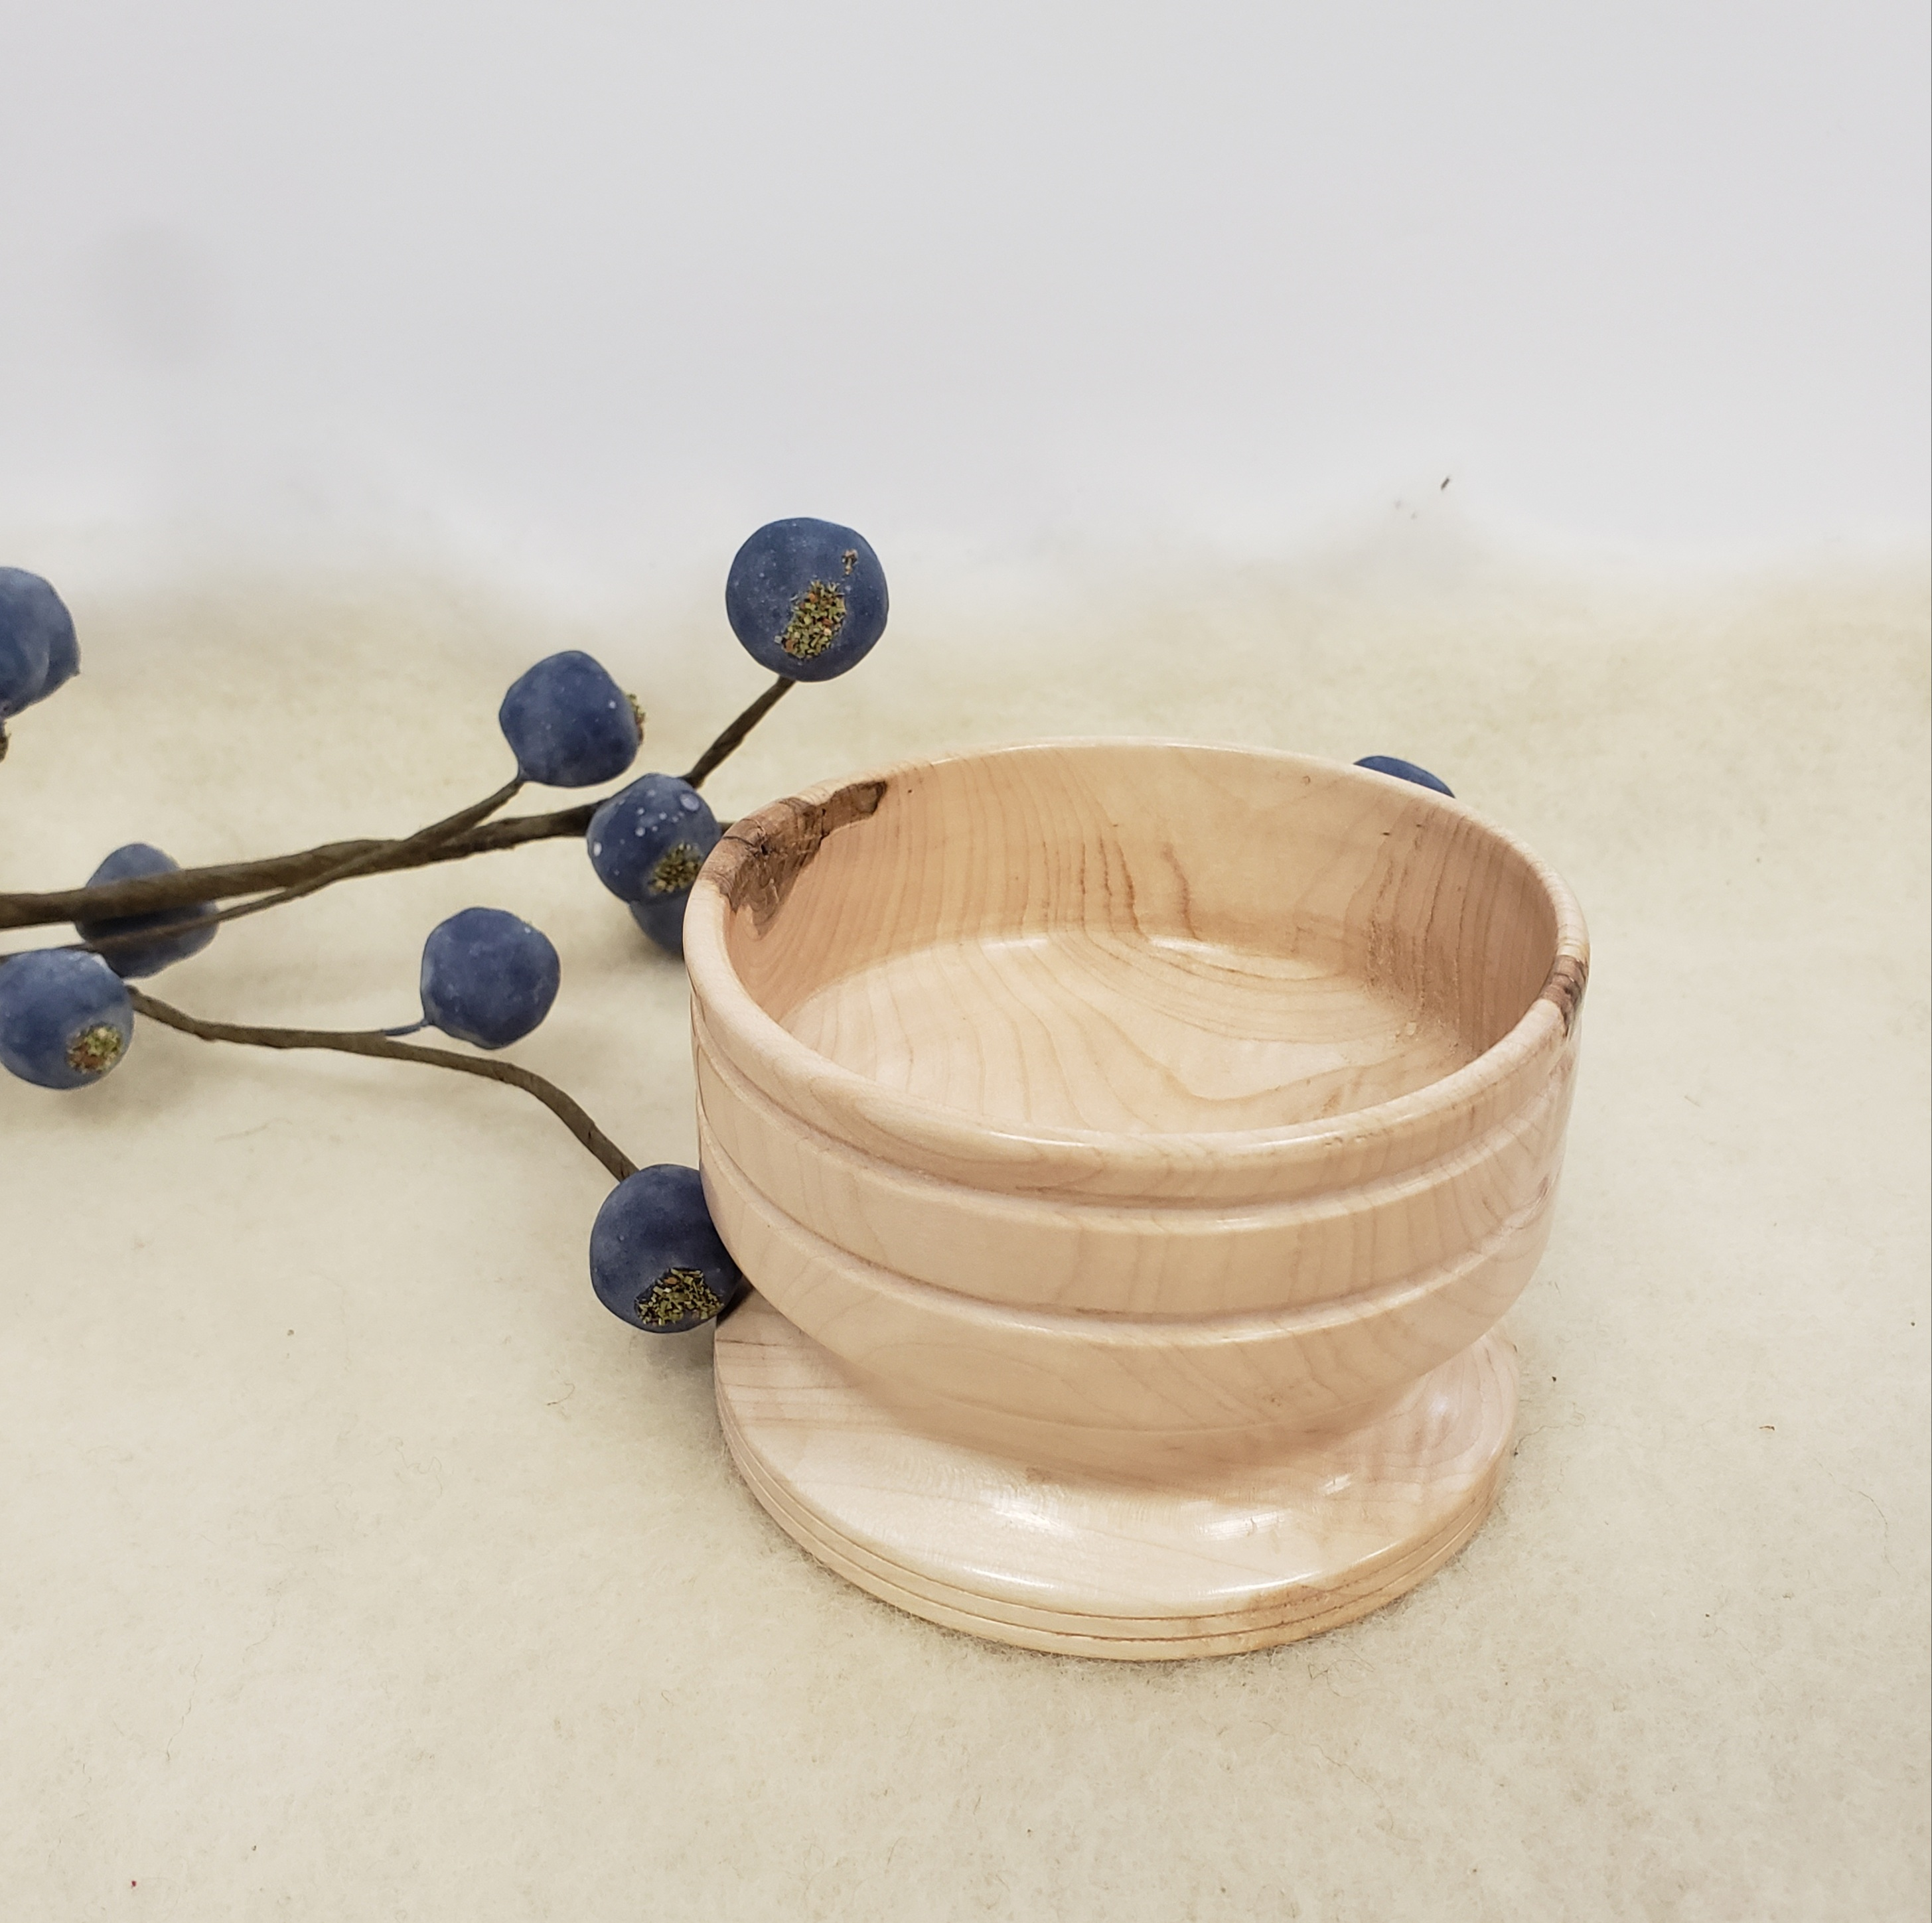 65-Footed Bowl, 3.5 in diameter